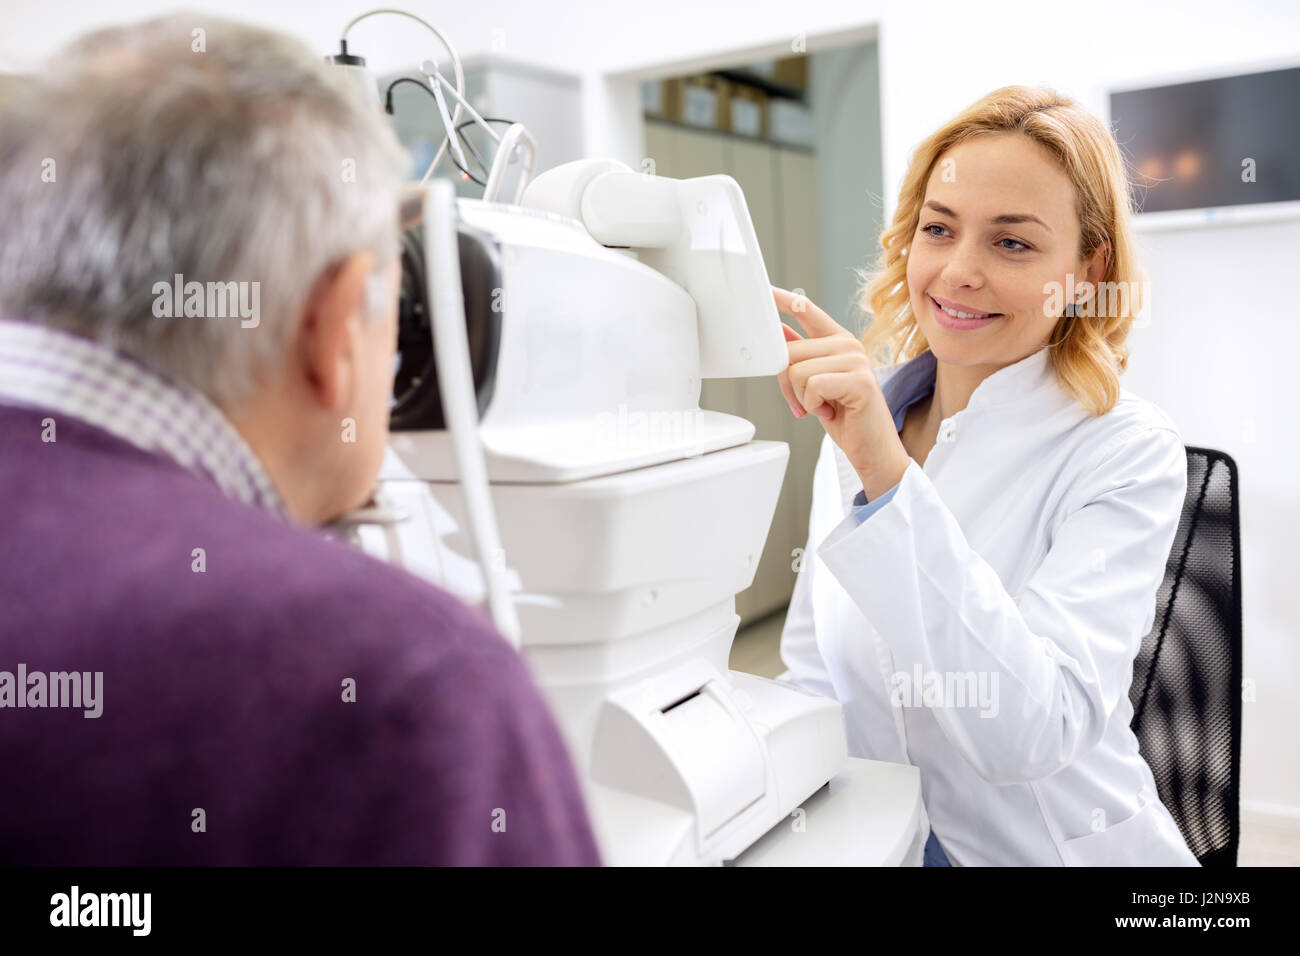 Young female eye doctor work with patient using eyes apparatus - Stock Image